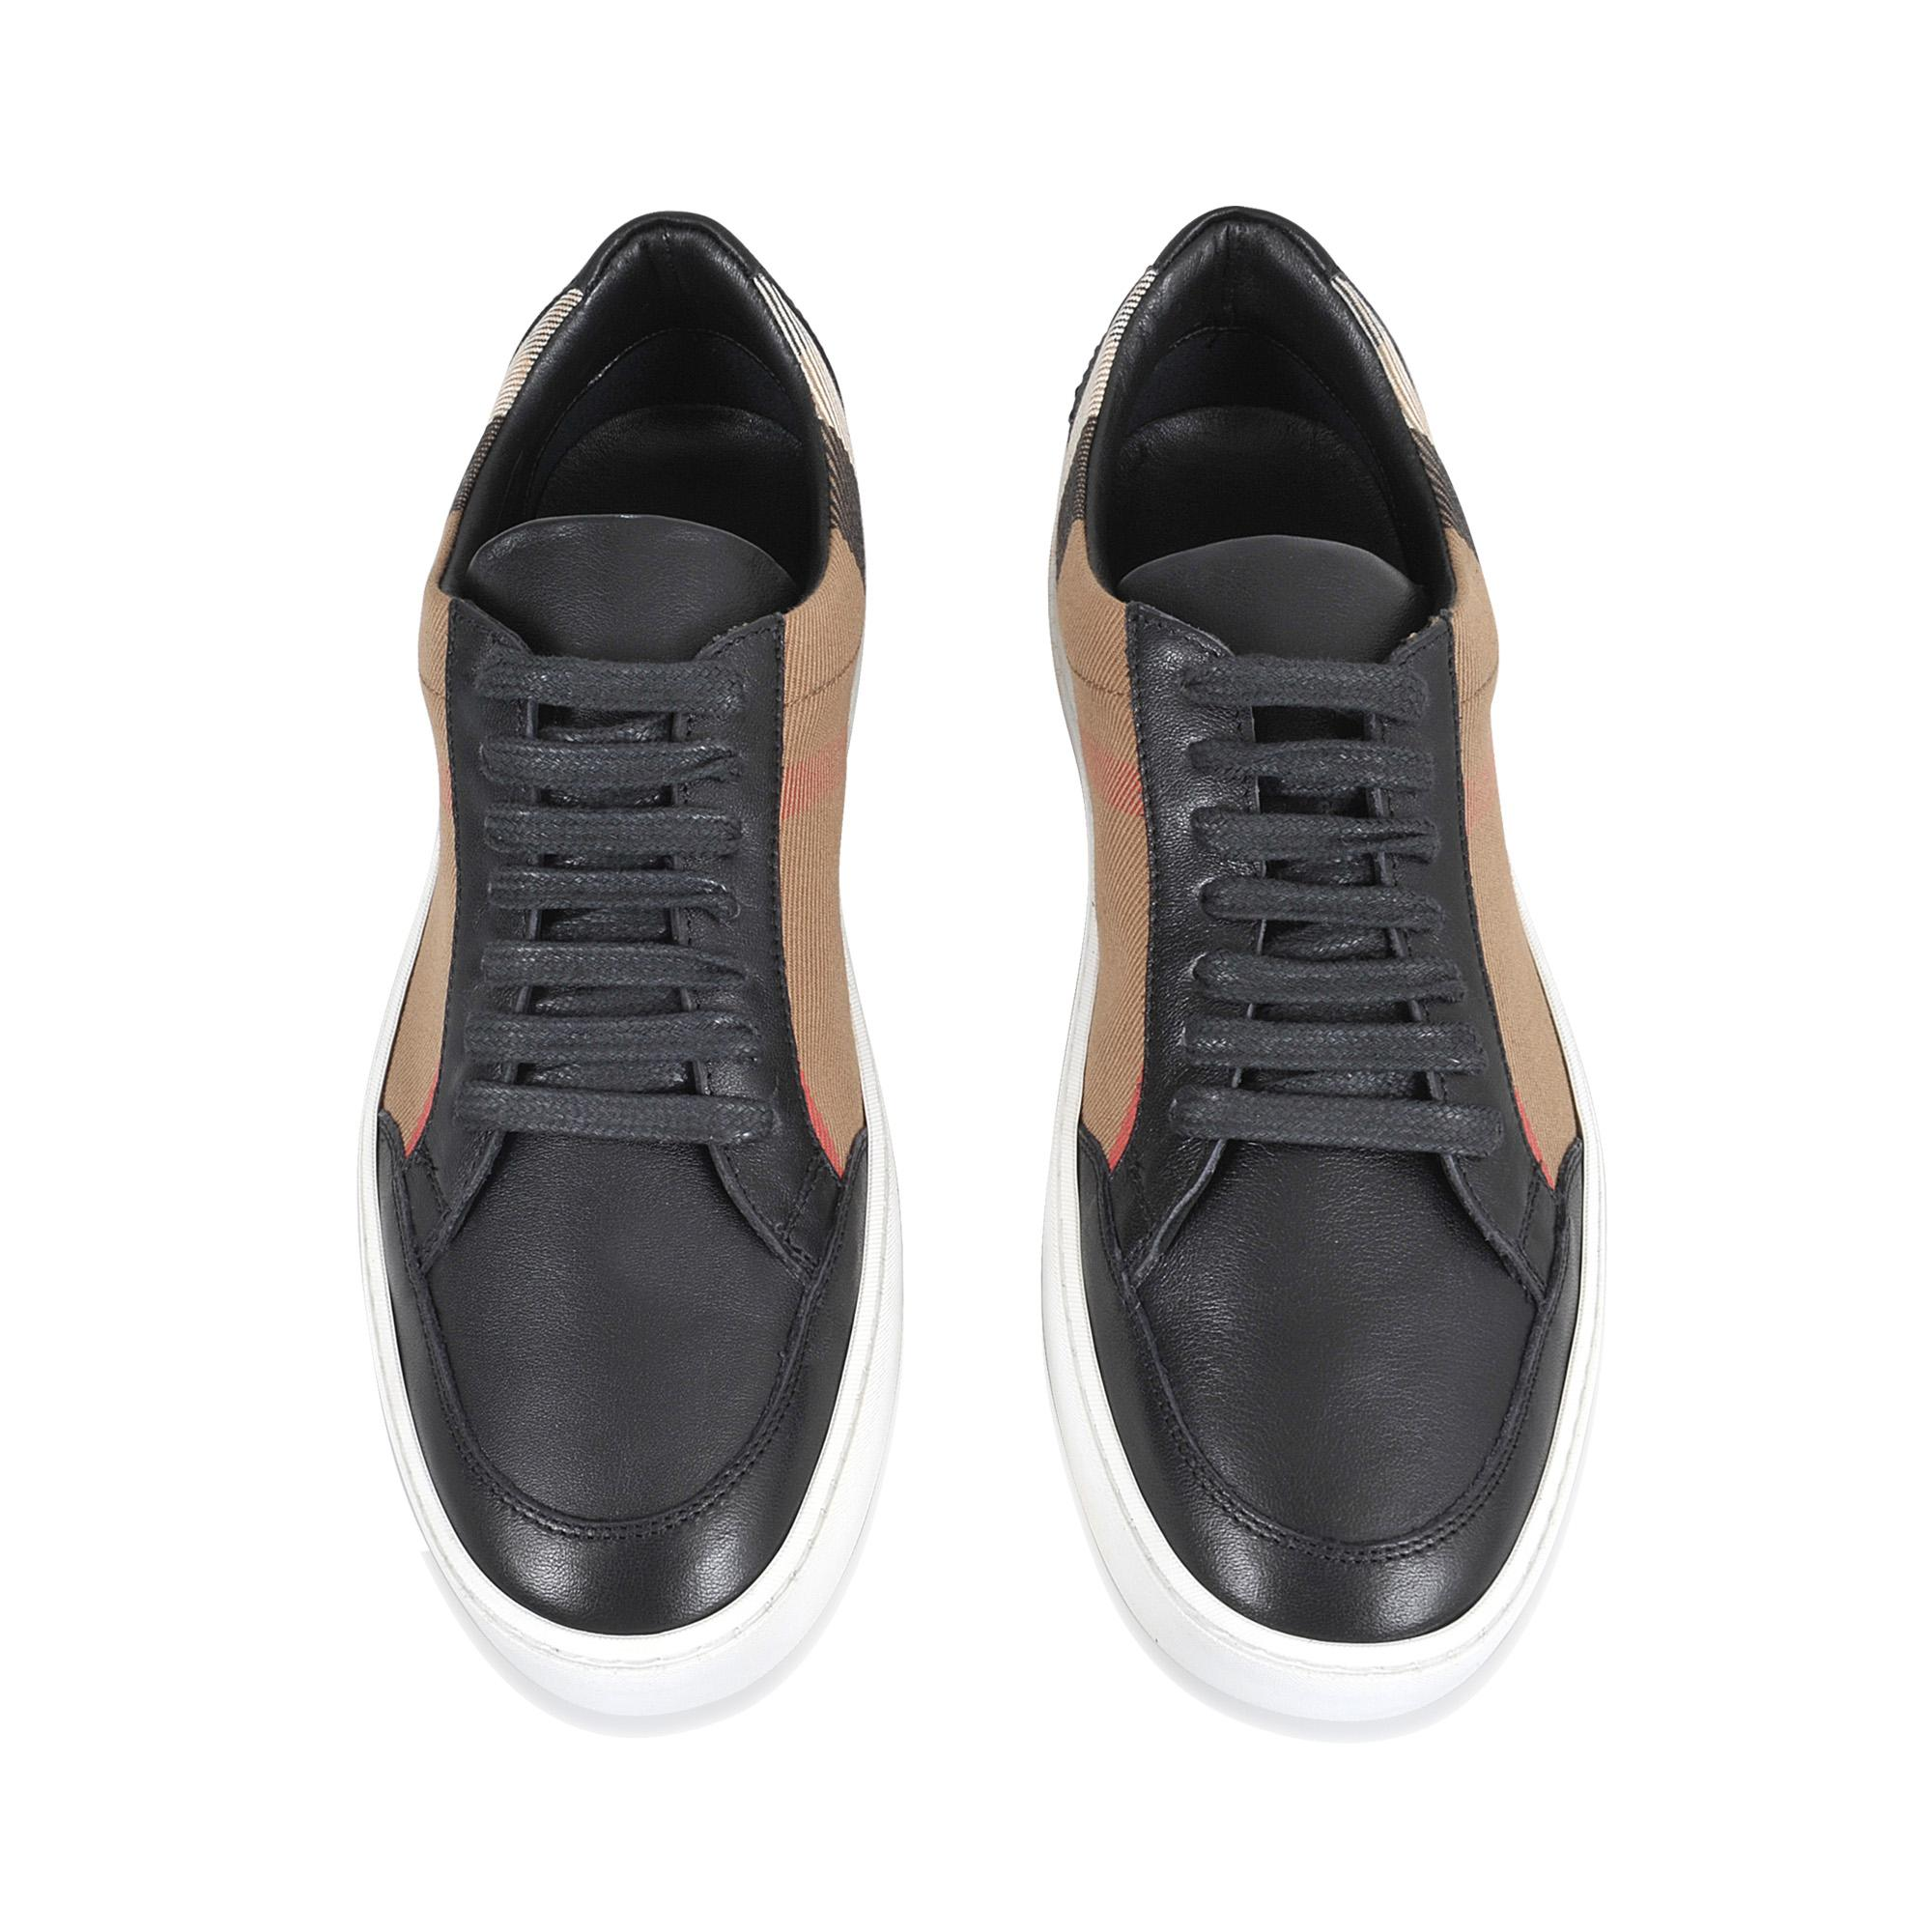 Burberry Salmond Classic Check Sneakers In Check Leather